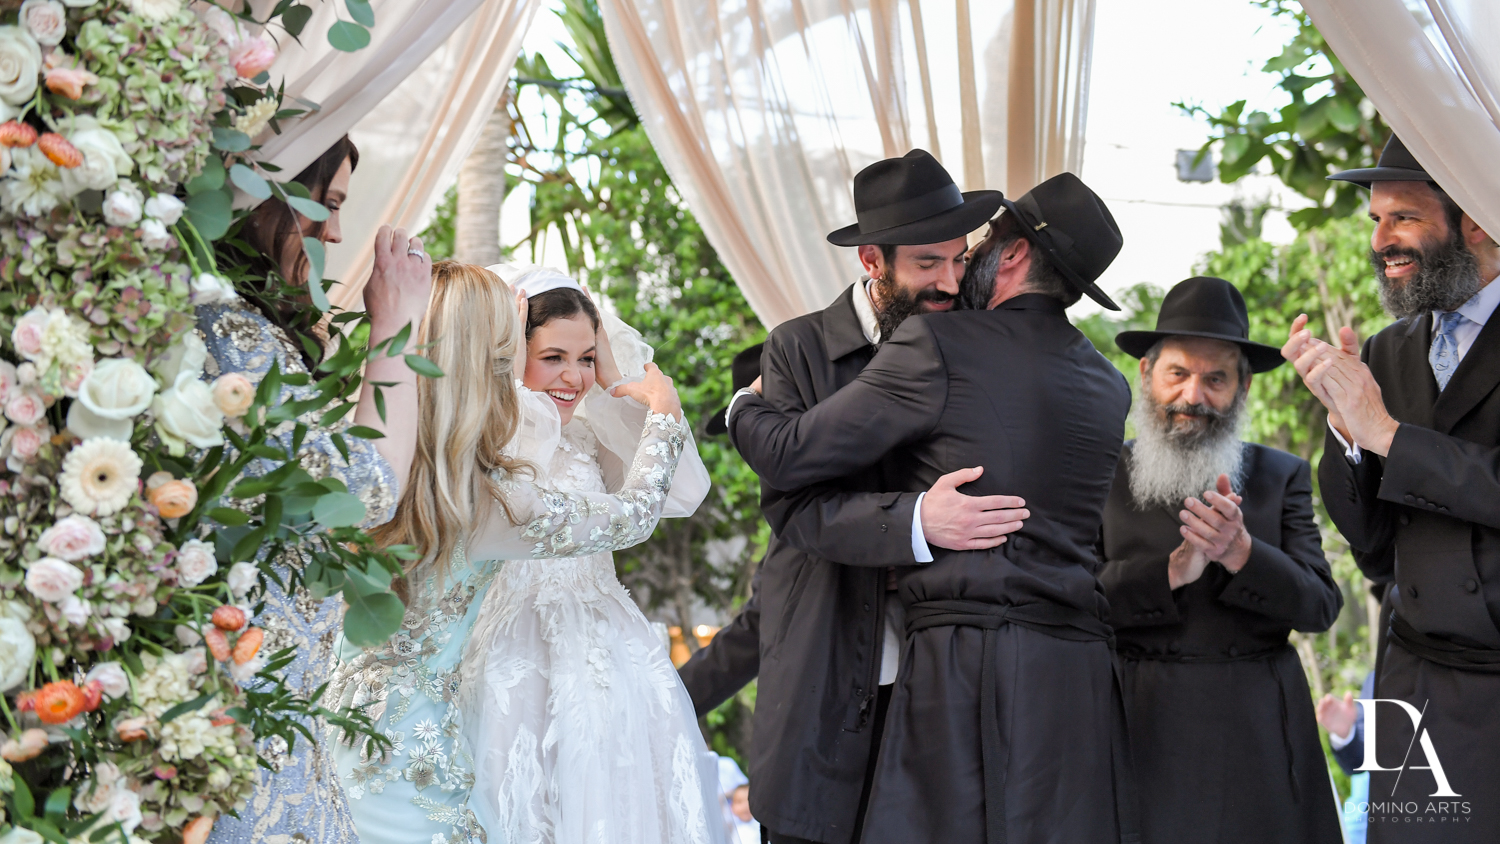 celebrations at Jewish Orthodox Wedding in Palm Beach by Domino Arts Photography